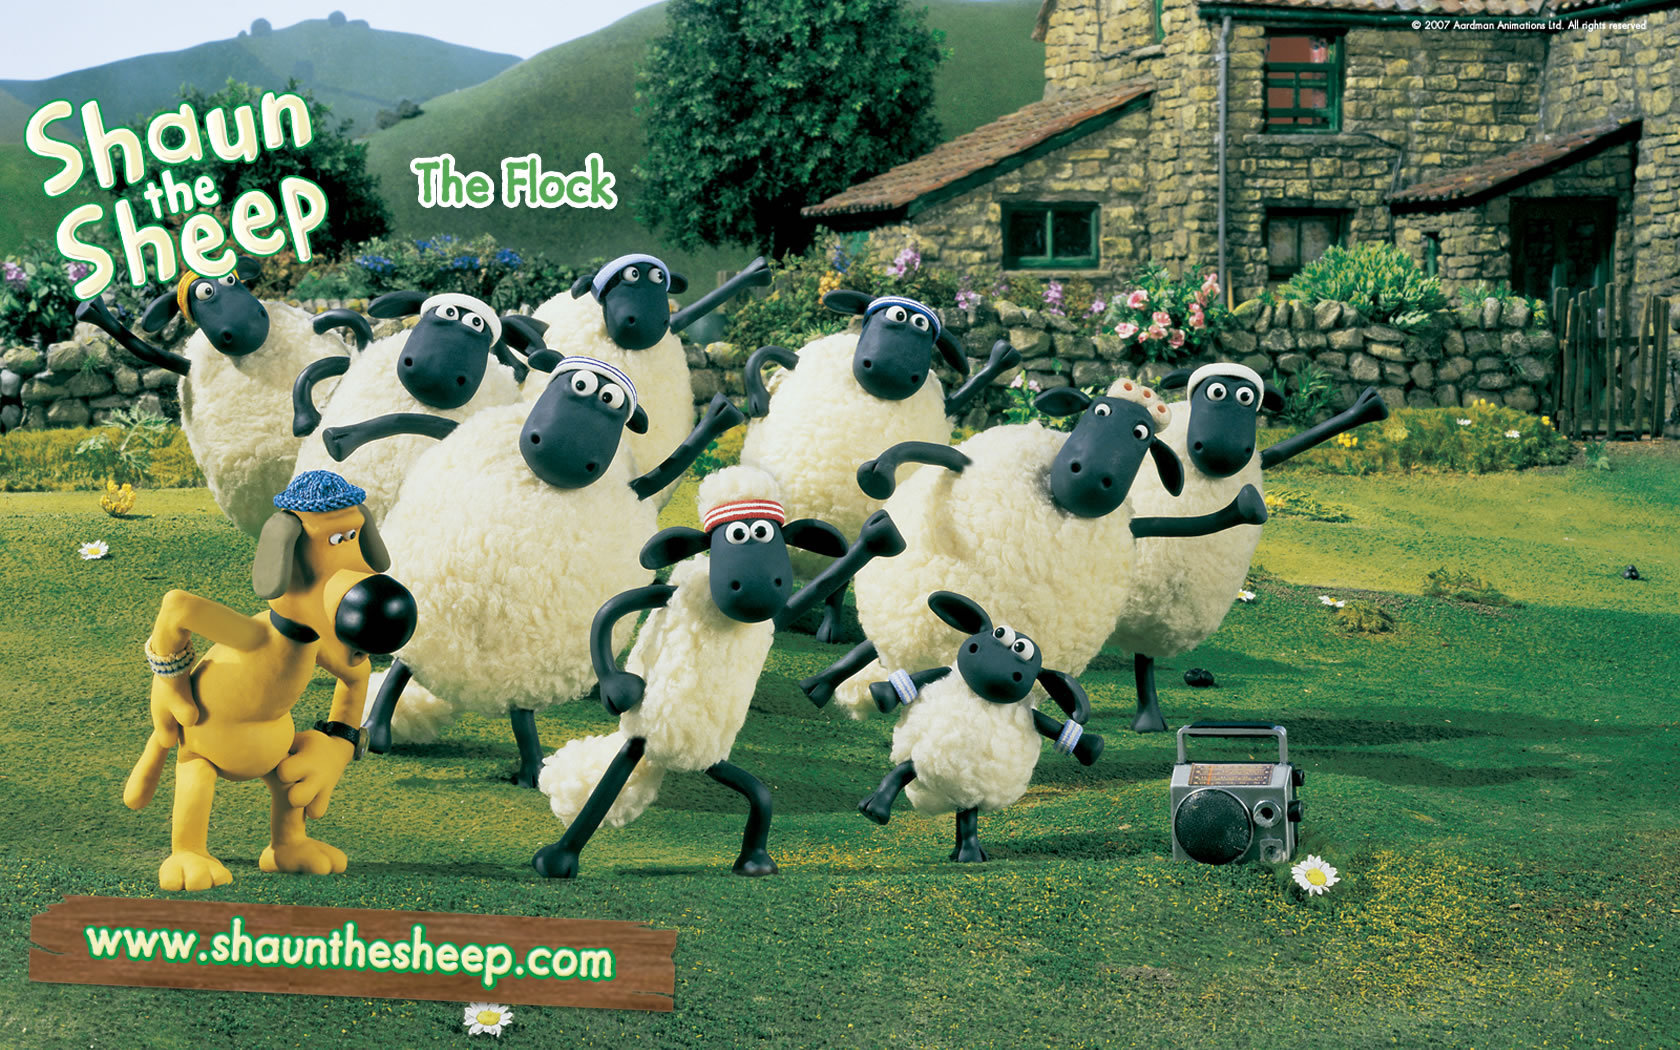 Shaun the Sheep Shaun the sheep